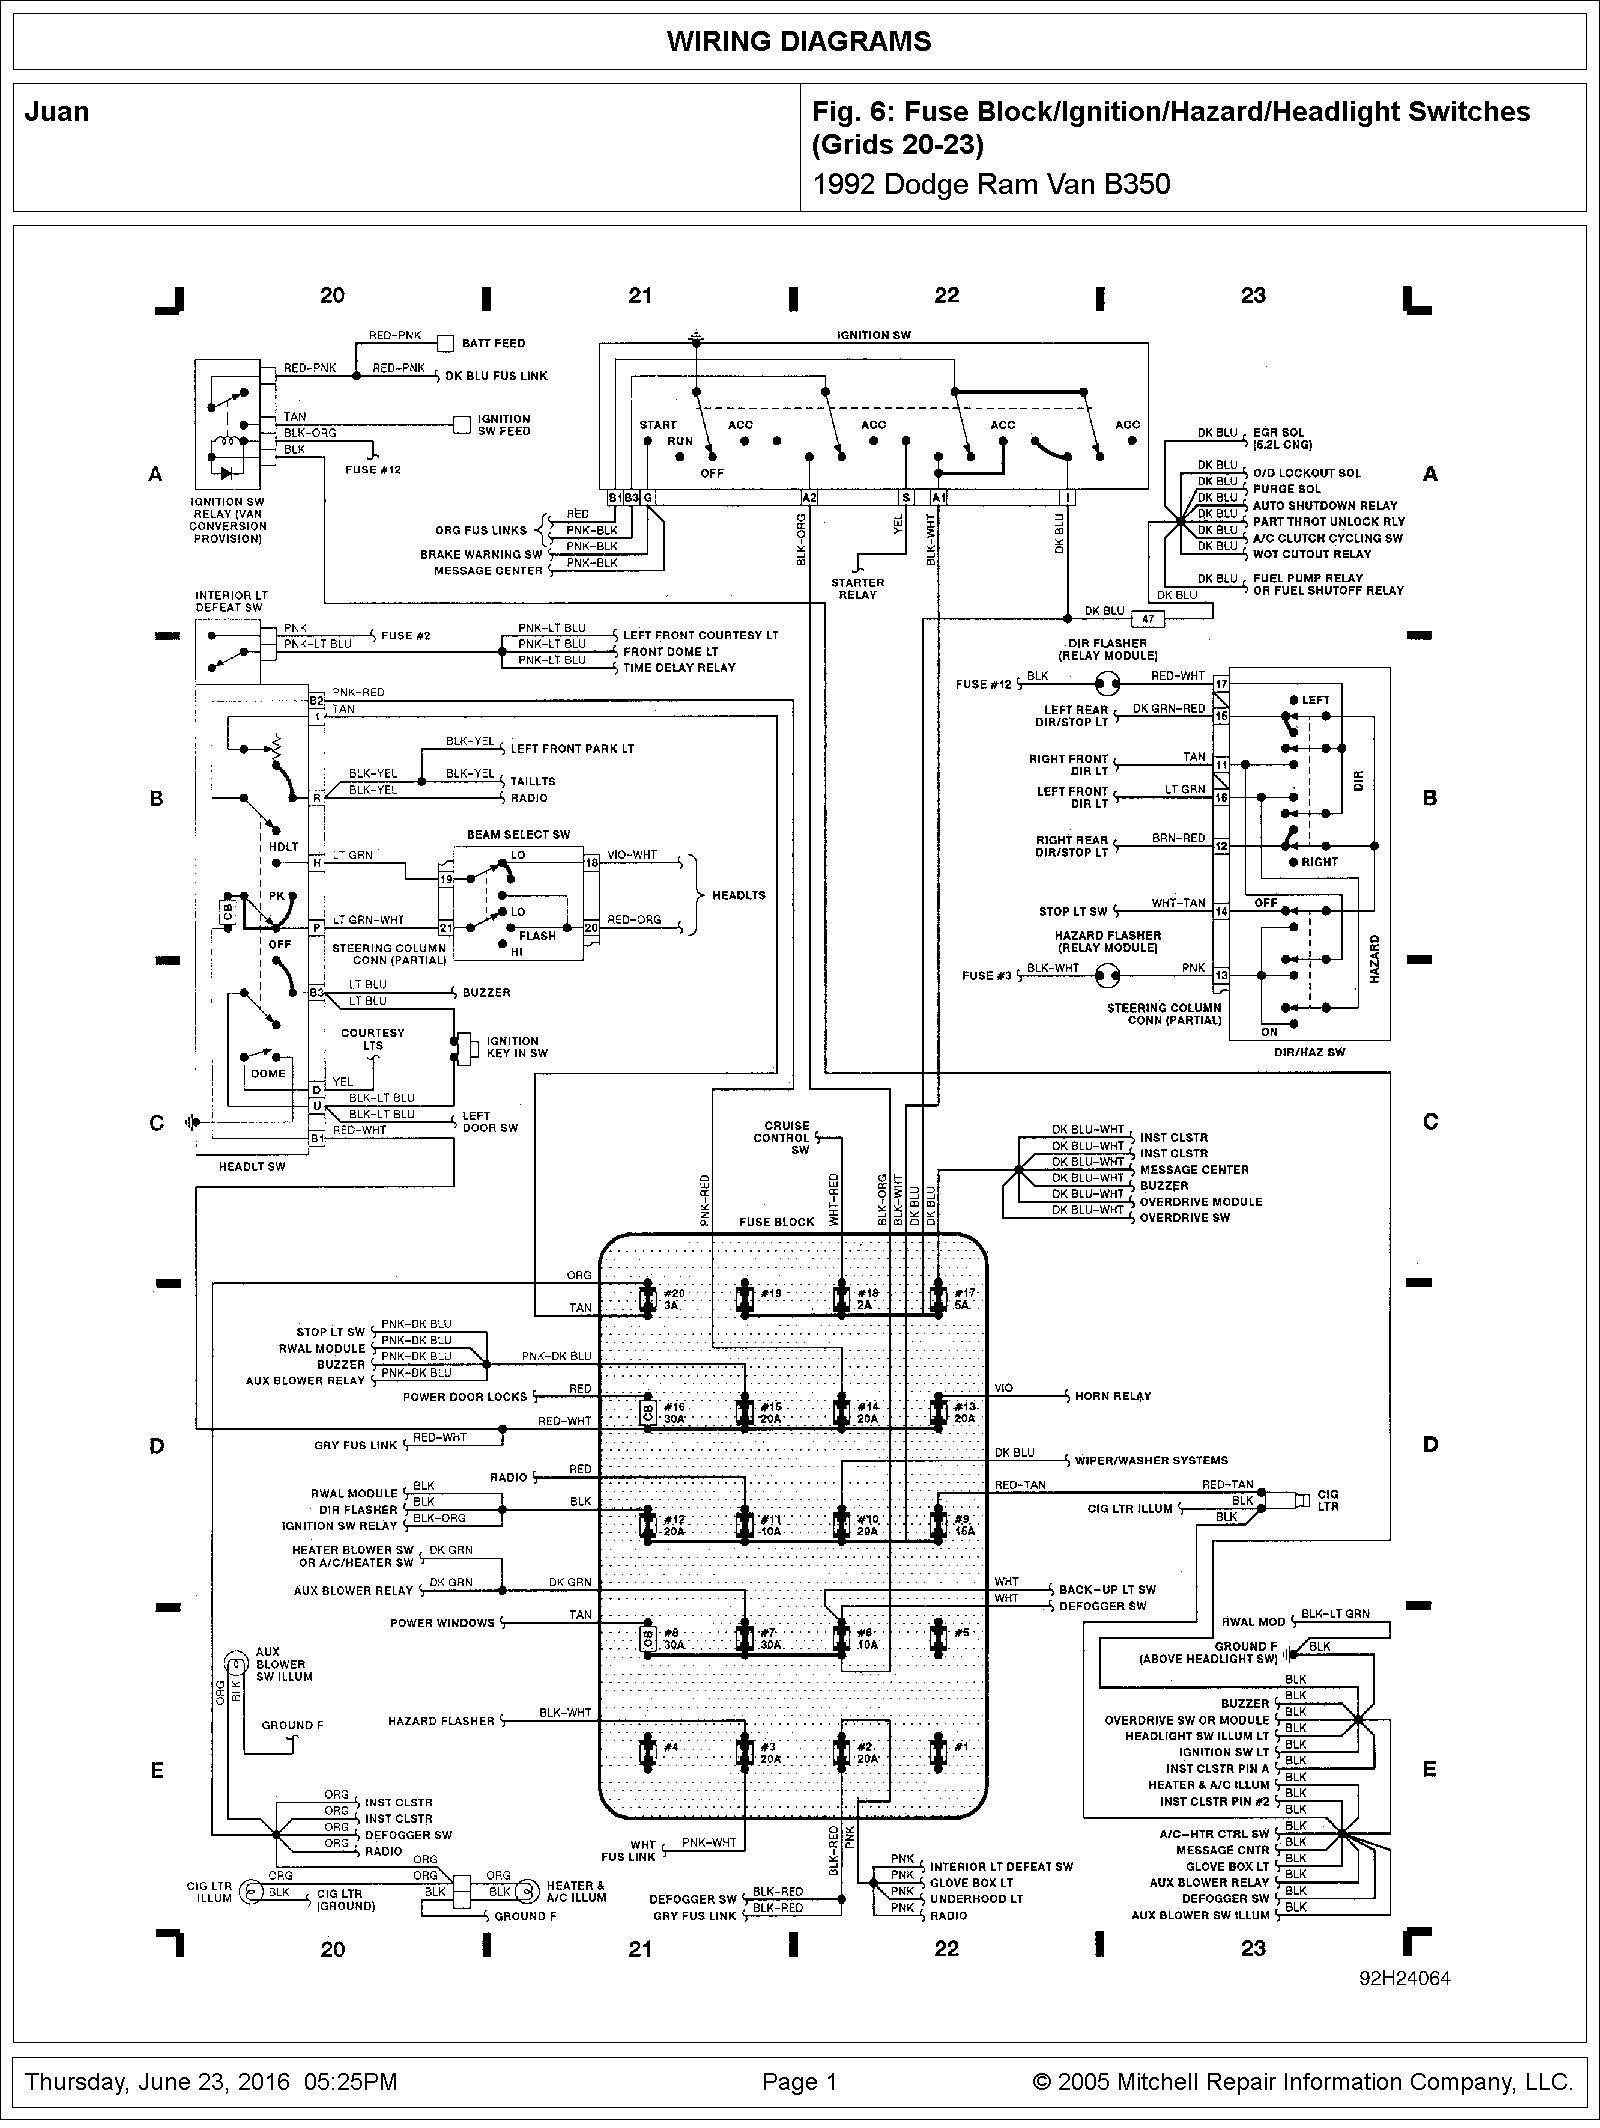 1991 Dodge B350 Fuse Box Wiring Diagrams Panel Panel Chatteriedelavalleedufelin Fr